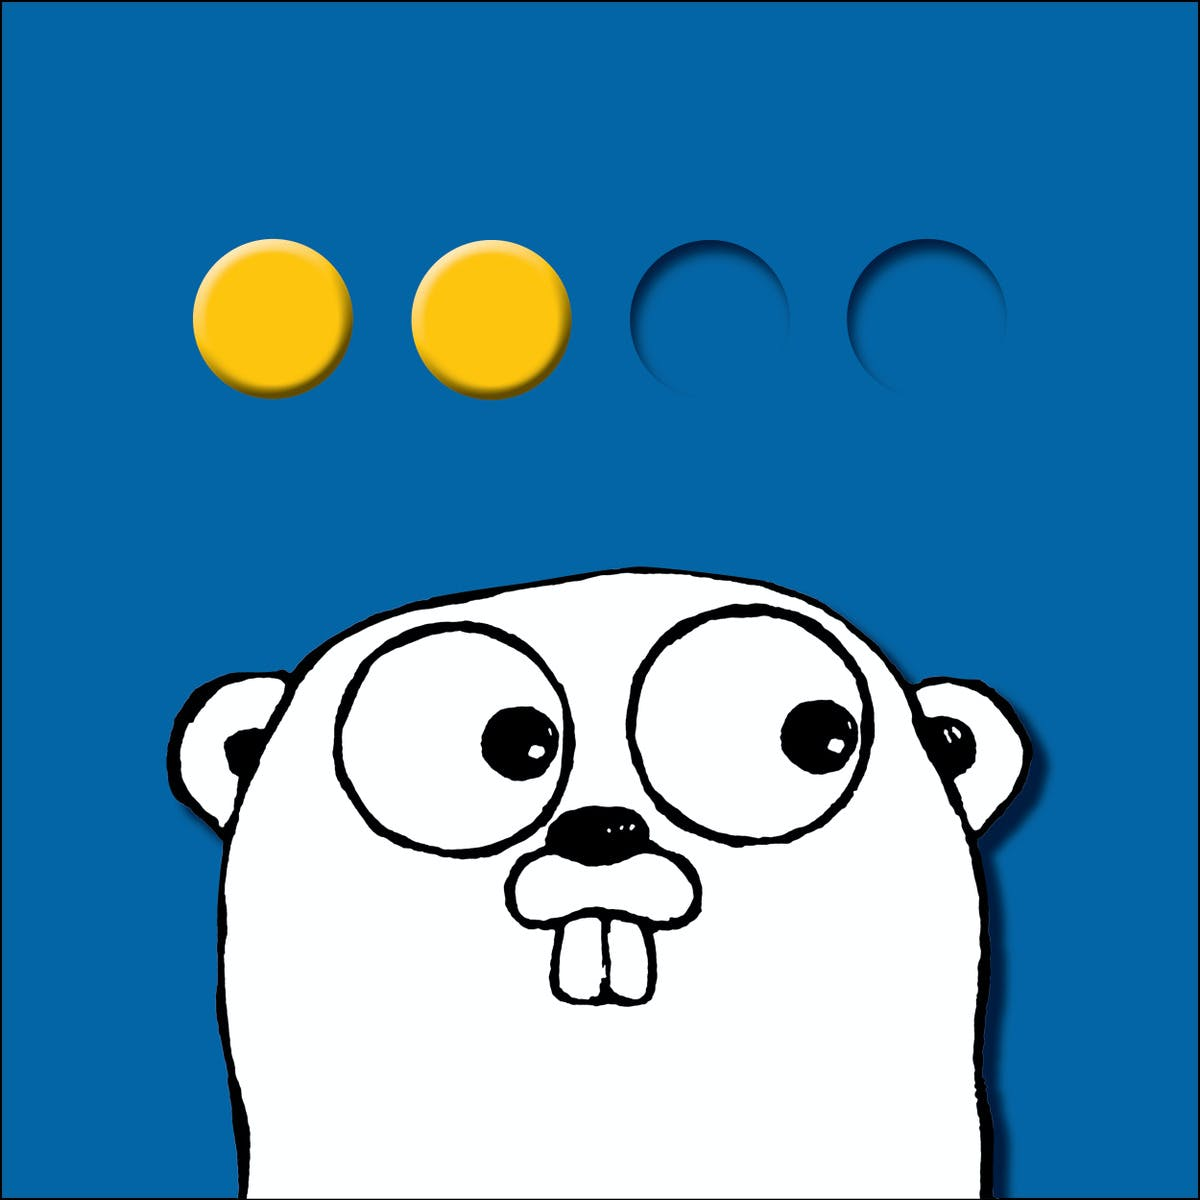 Functions, Methods, and Interfaces in Go